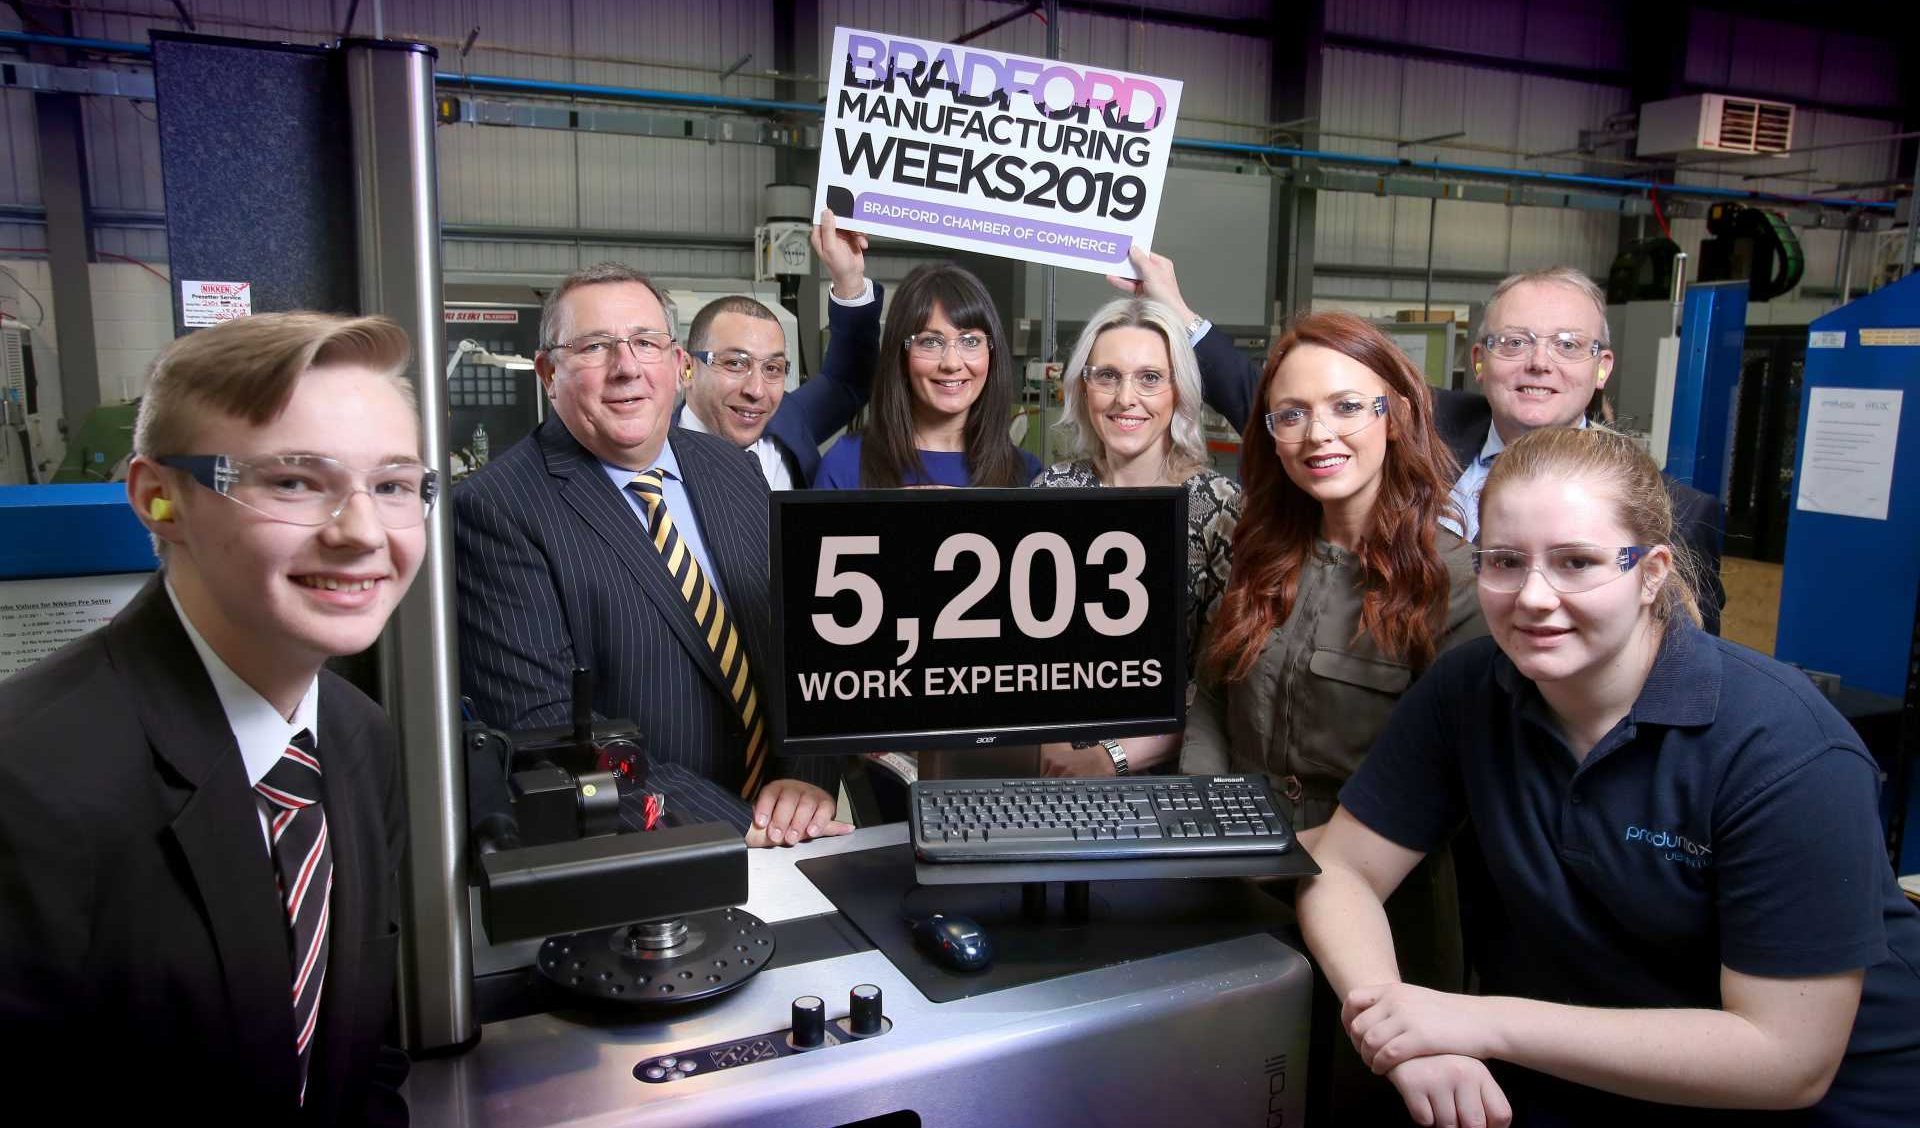 Bradford Manufacturing Week - (L to R): recent Produmax apprentice Ben Bott, Nick Garthwaite and sponsors Andrew Joseph from E3 Recruitment, Alexandra Fogal from Barclays, Victoria Wainwright from Naylor Wintersgill, Kirsty Tagg from Dale Carnegie, Paul Young from Gordons and Produmax apprentice Jasmine Hibbert.